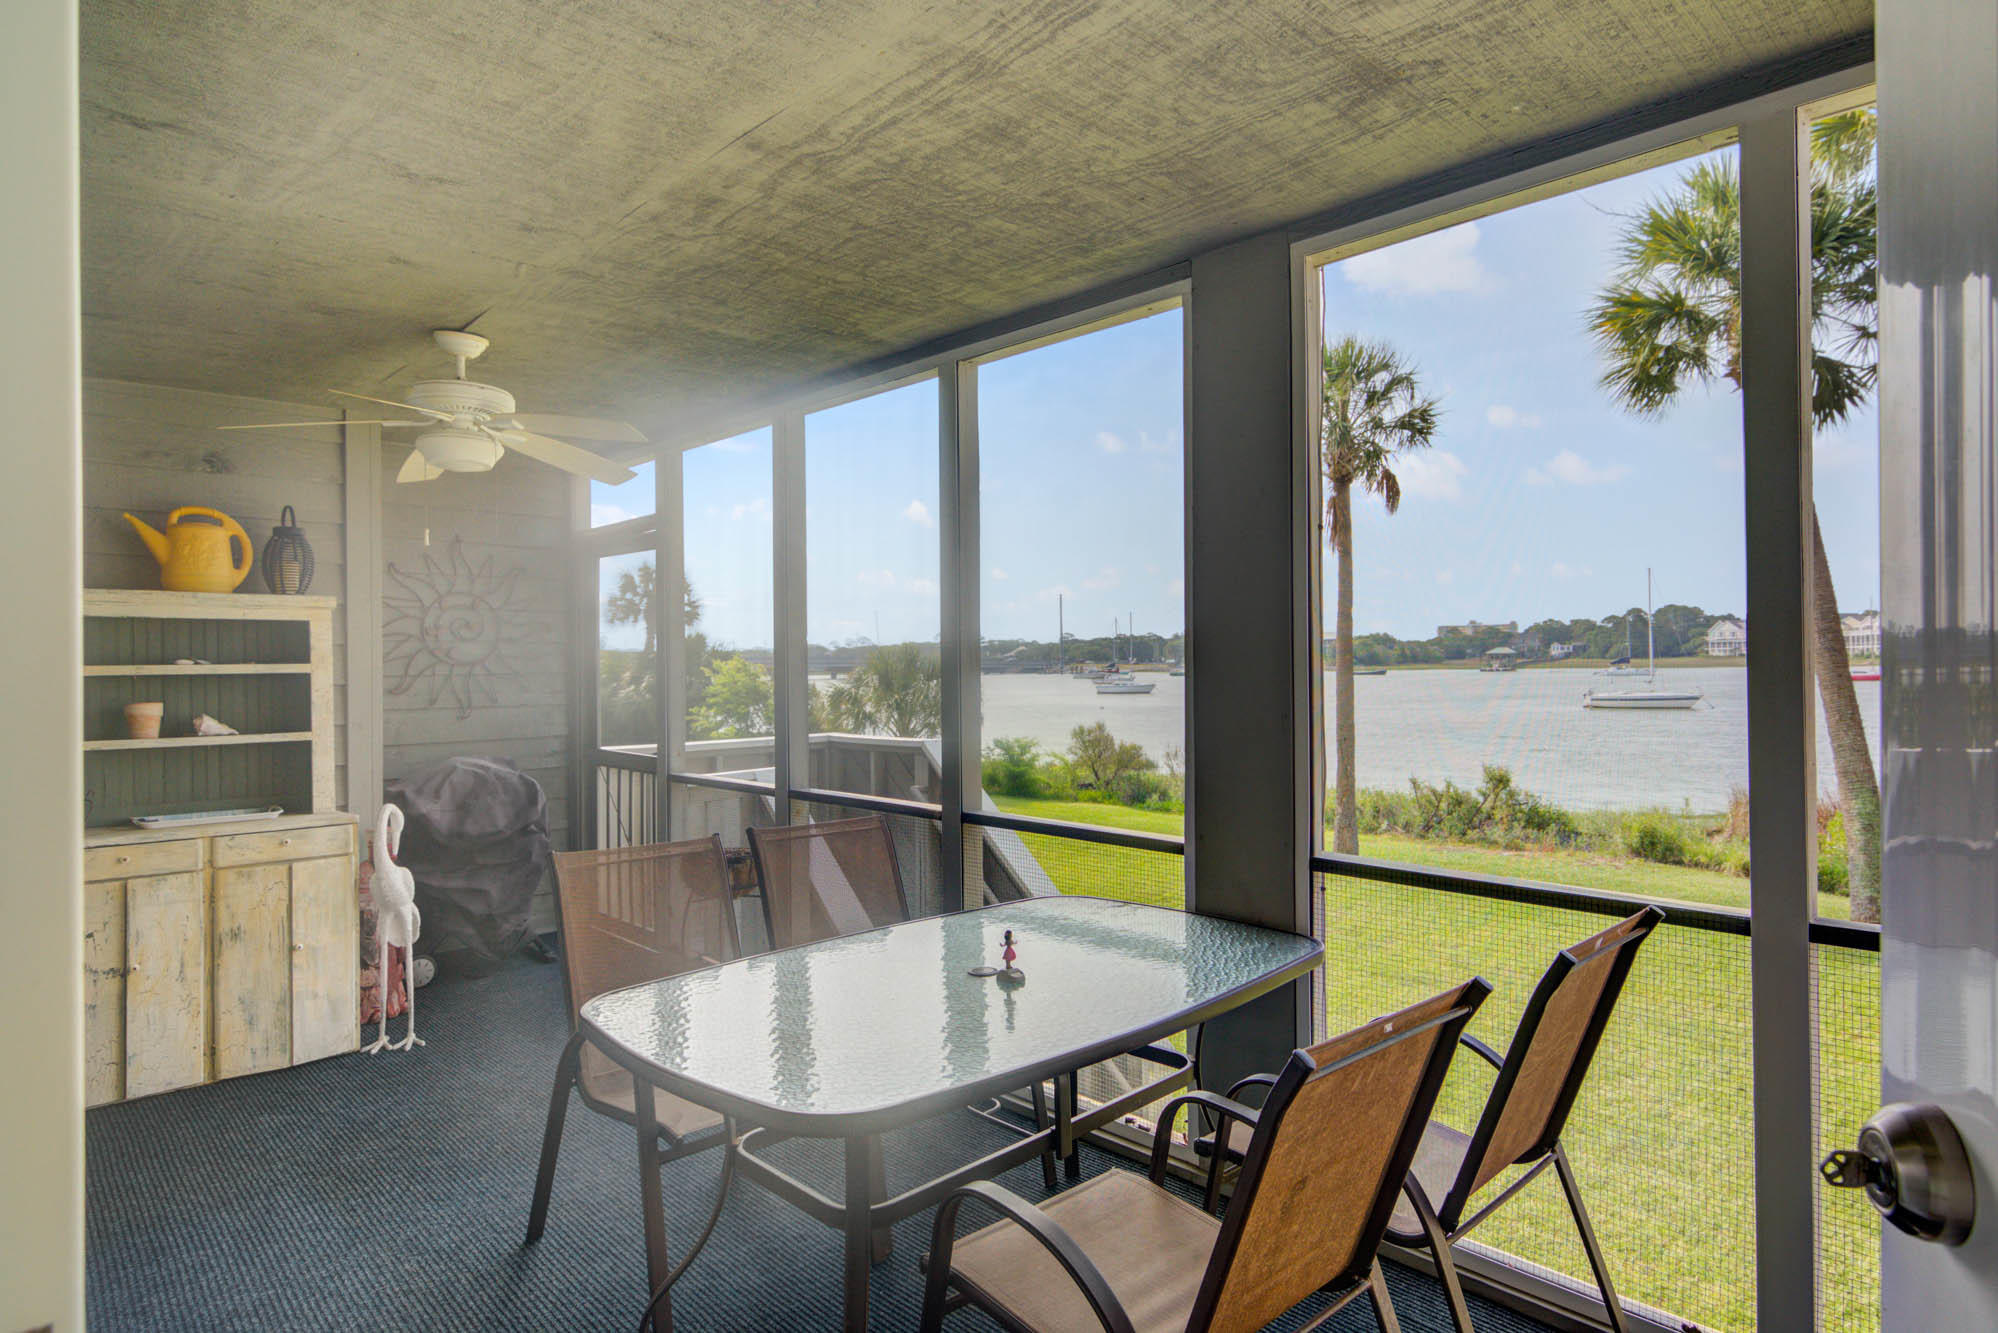 Mariners Cay Homes For Sale - 19 Mariners Cay, Folly Beach, SC - 5